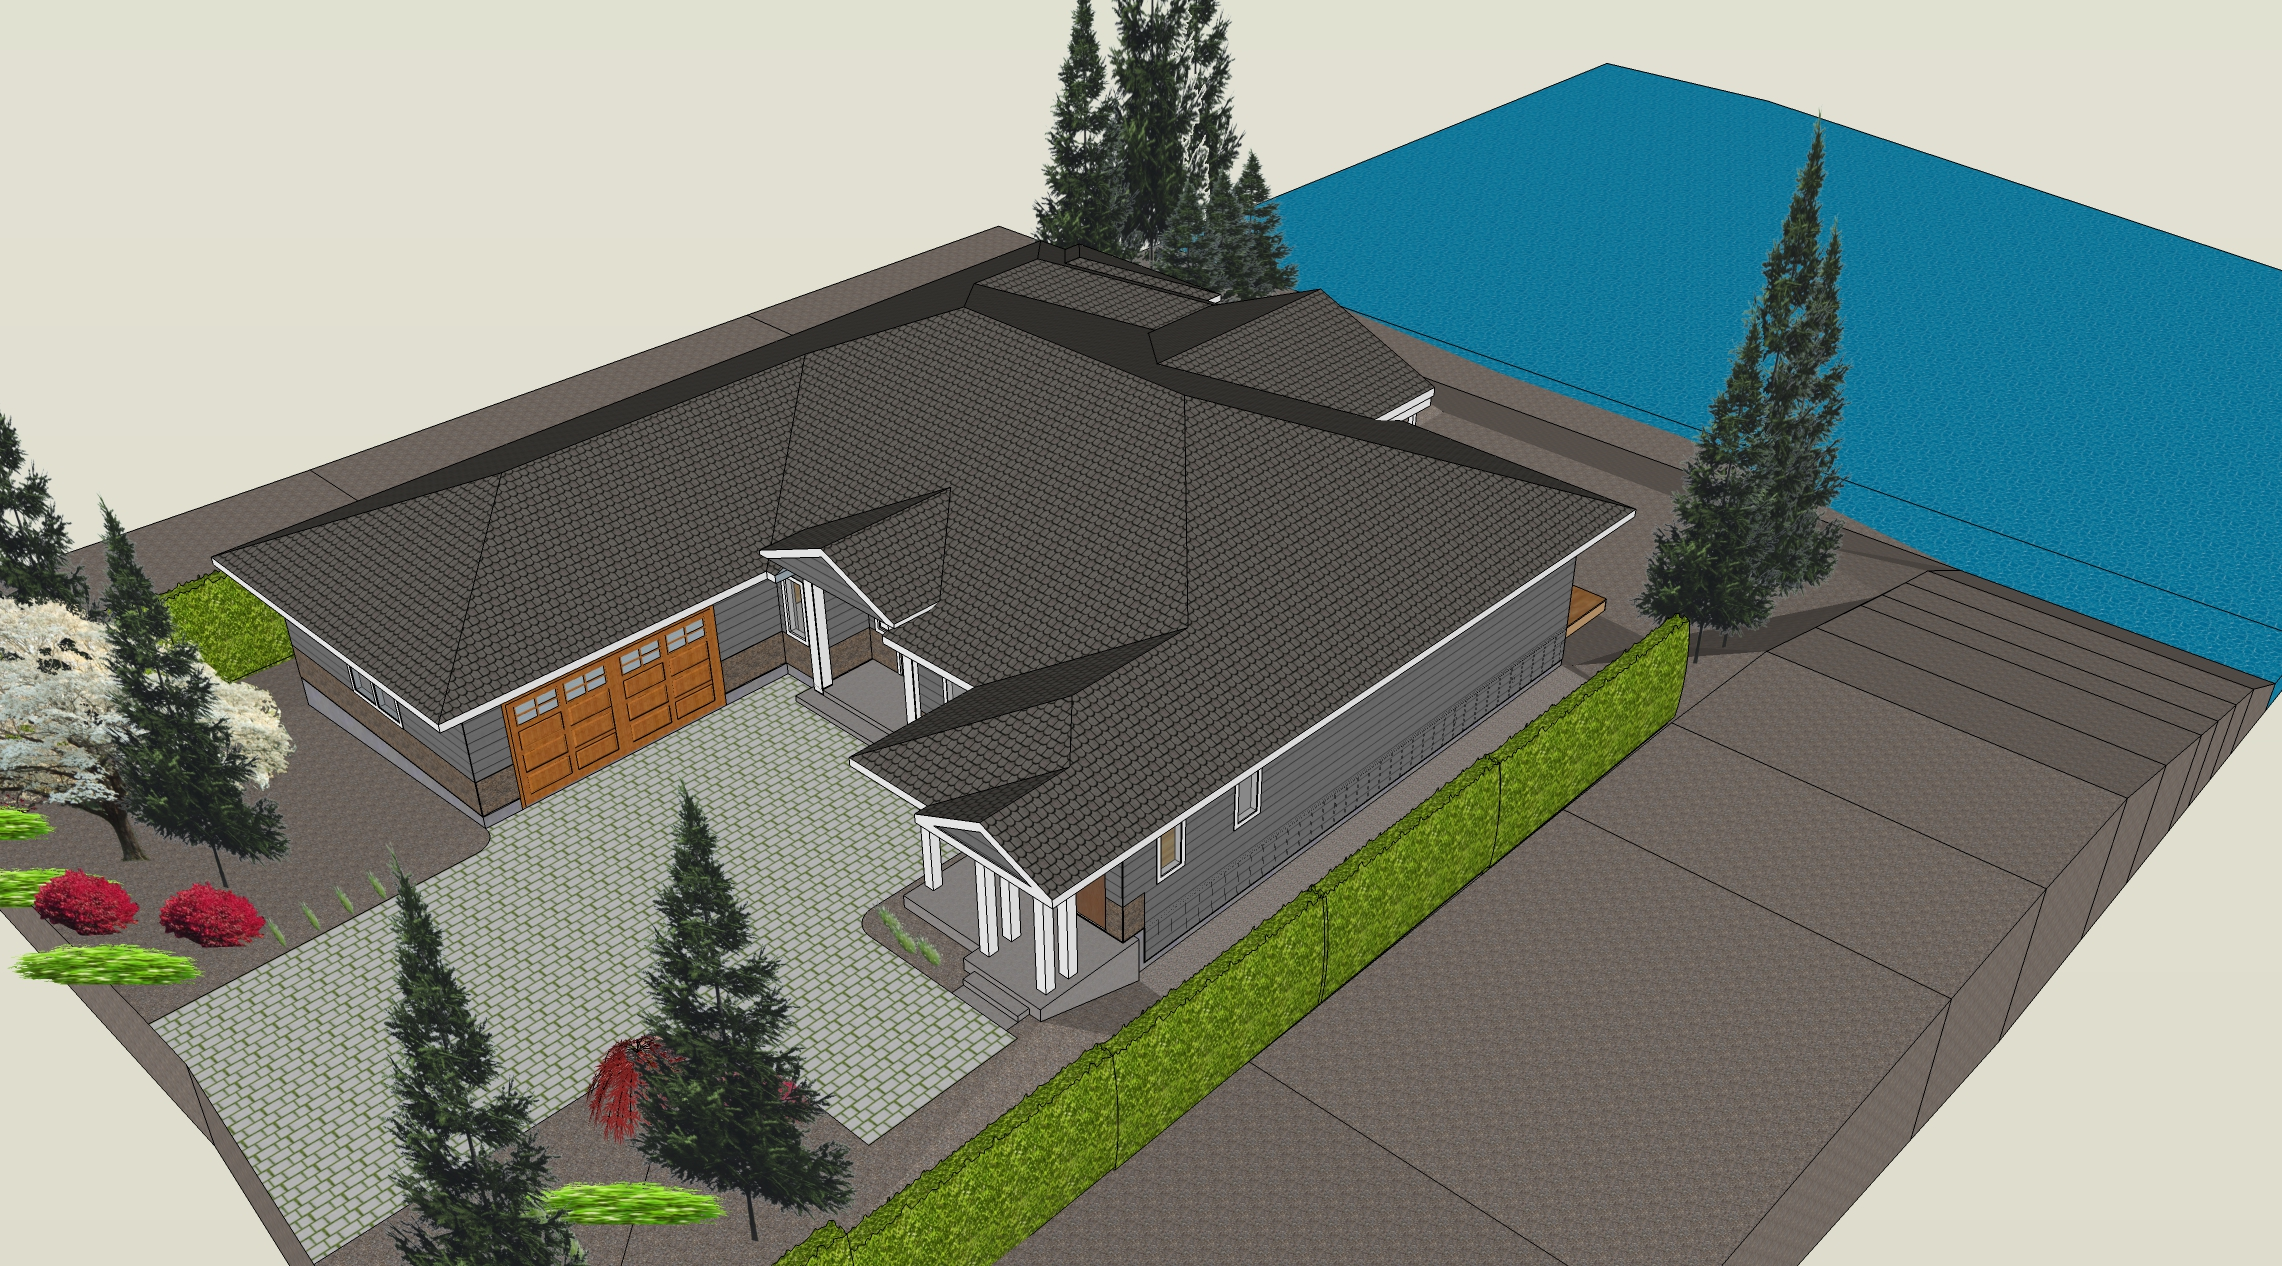 Portland custom home builders - The Powell Group